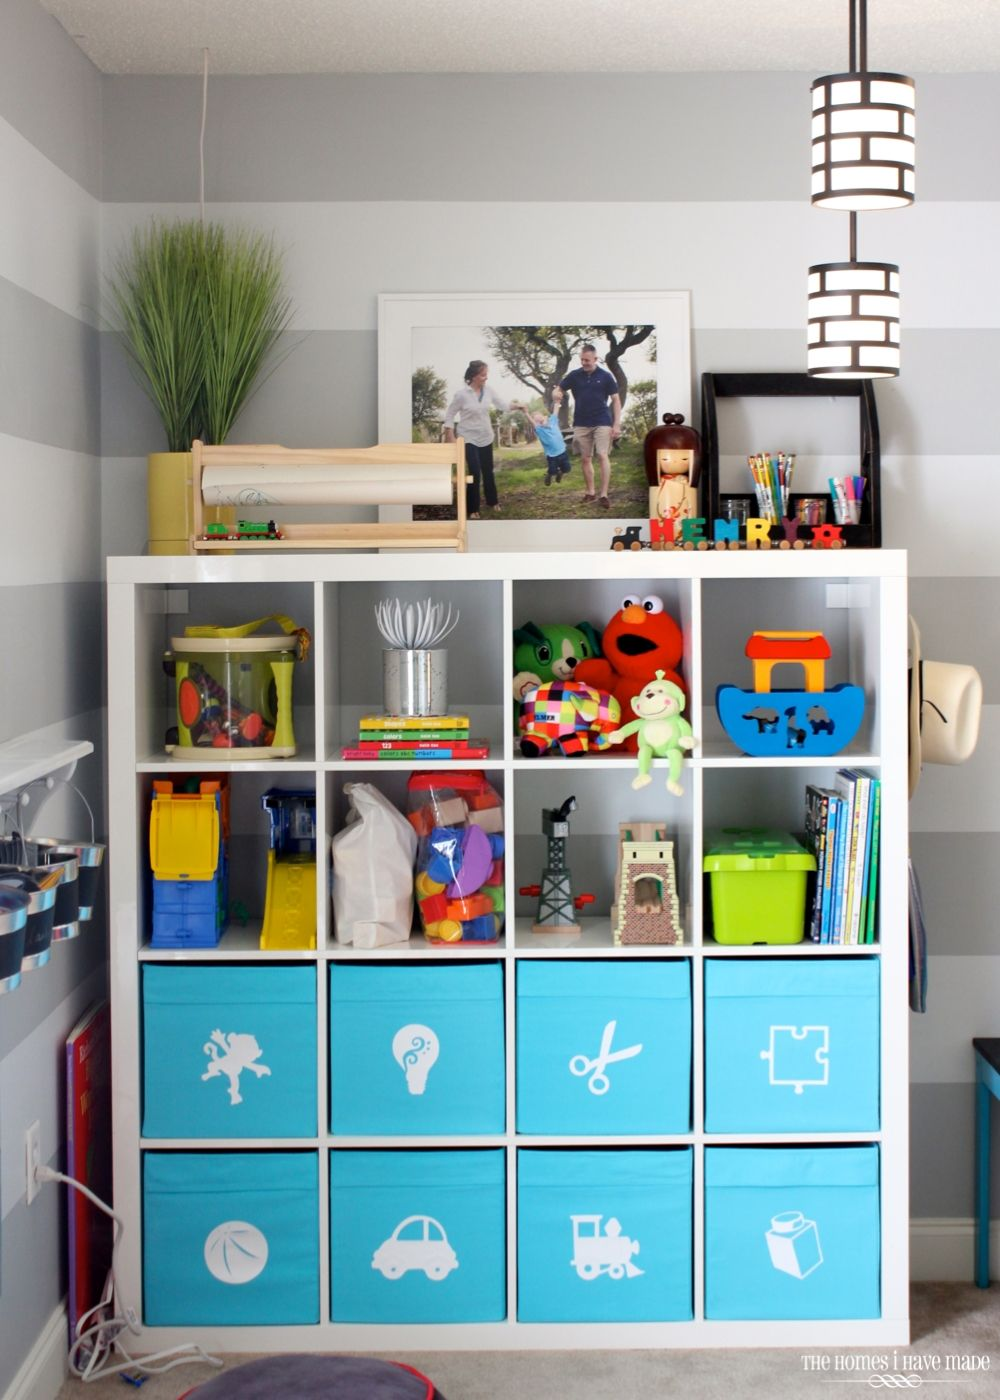 Design Ikea Playroom Ideas toy storage in an ikea expedit playrooms and the playroom with pictures so they know where to put toys before they